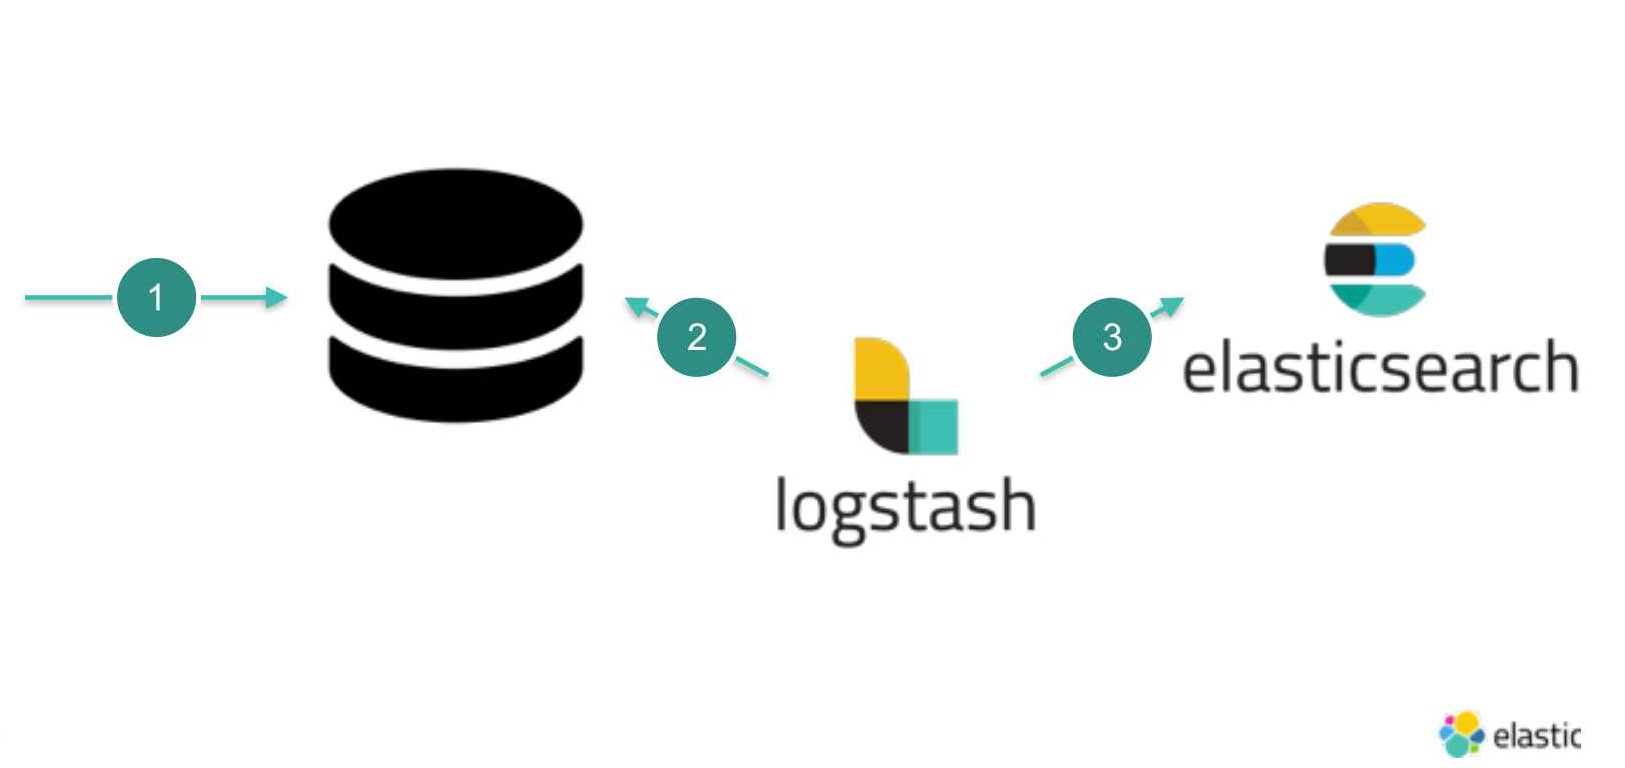 Replication of data from Relational database to ElasticSearch using Logstash